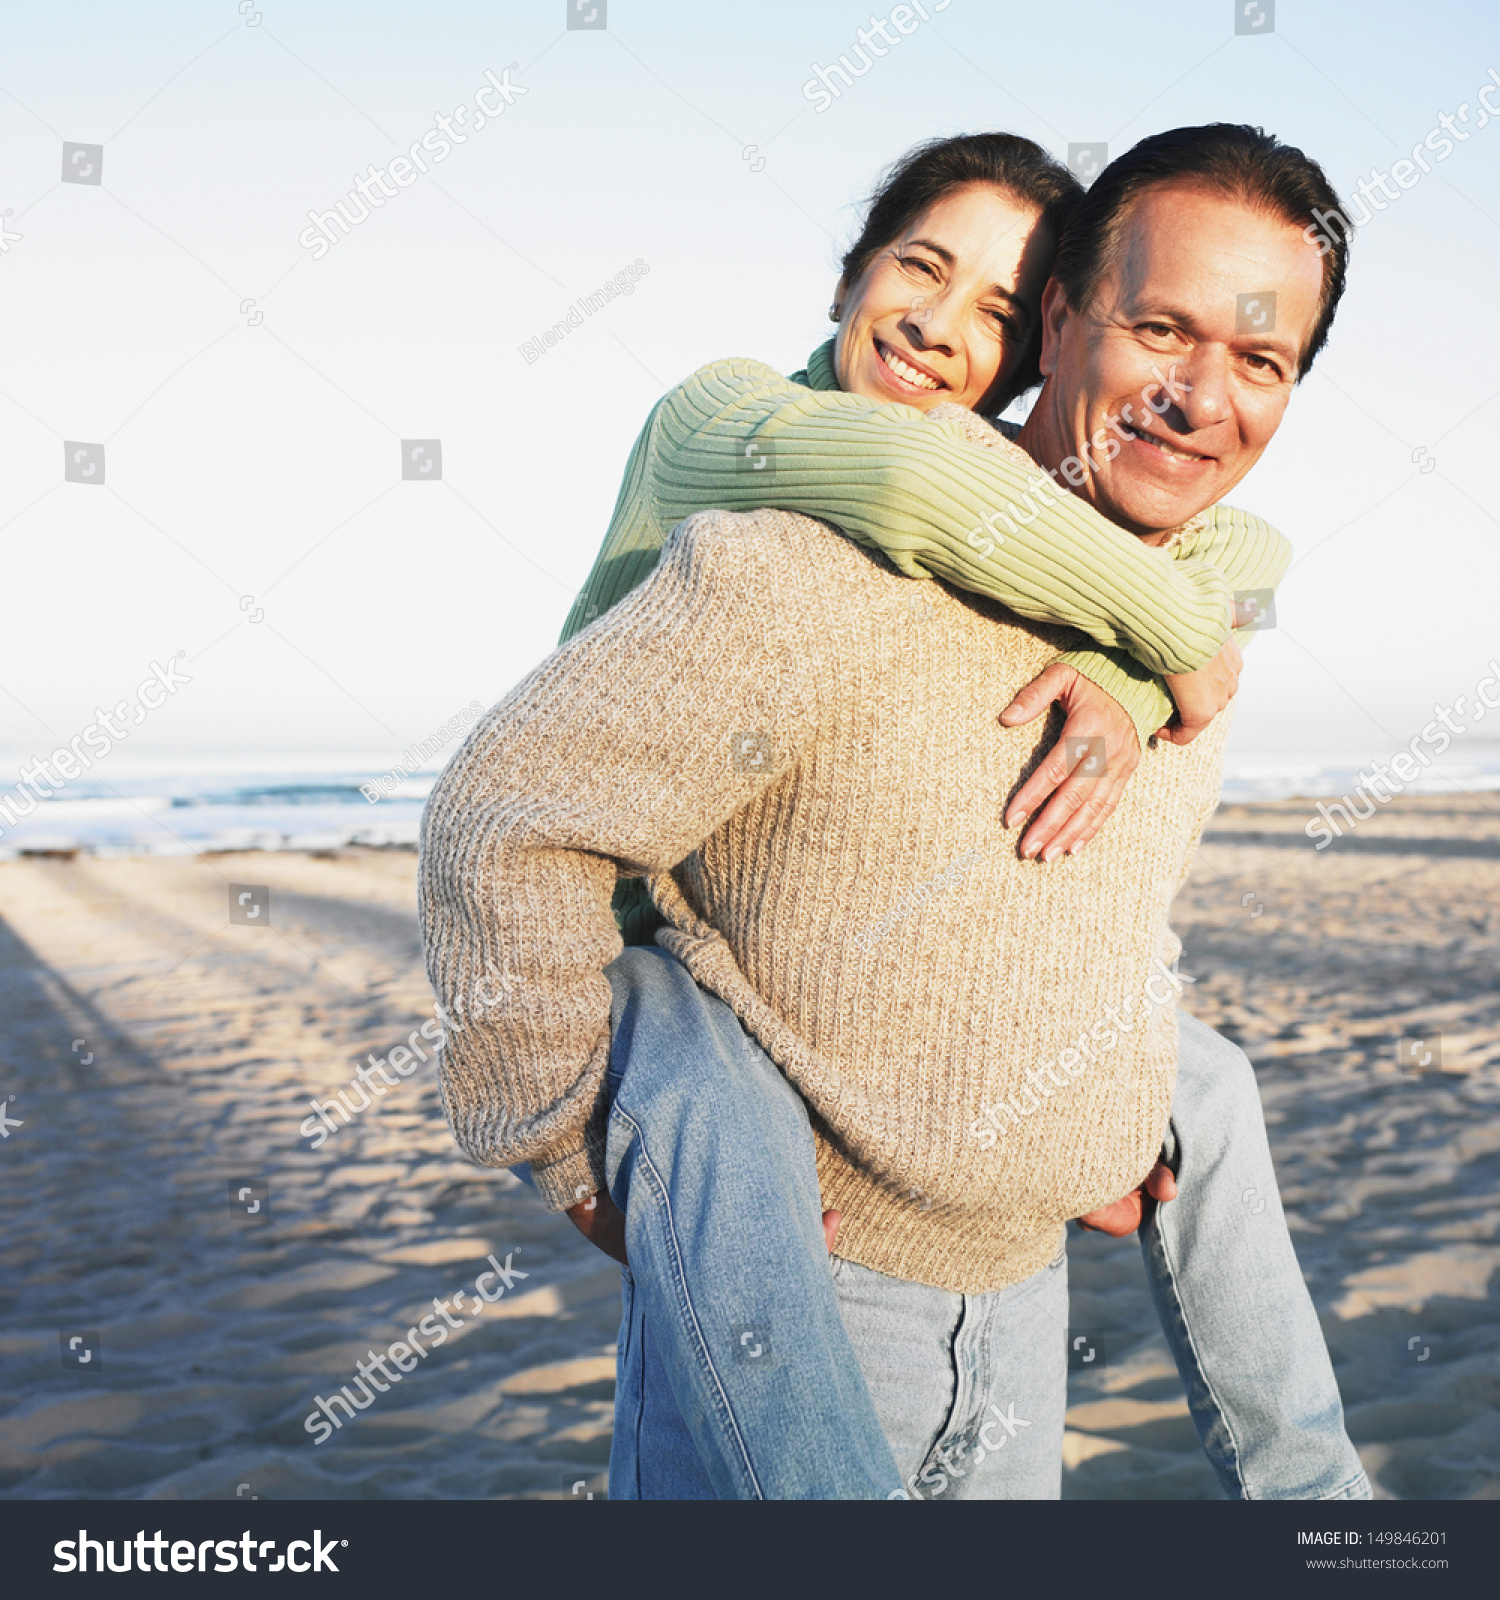 Man Giving Wife Piggyback Ride At Beach Stock Photo